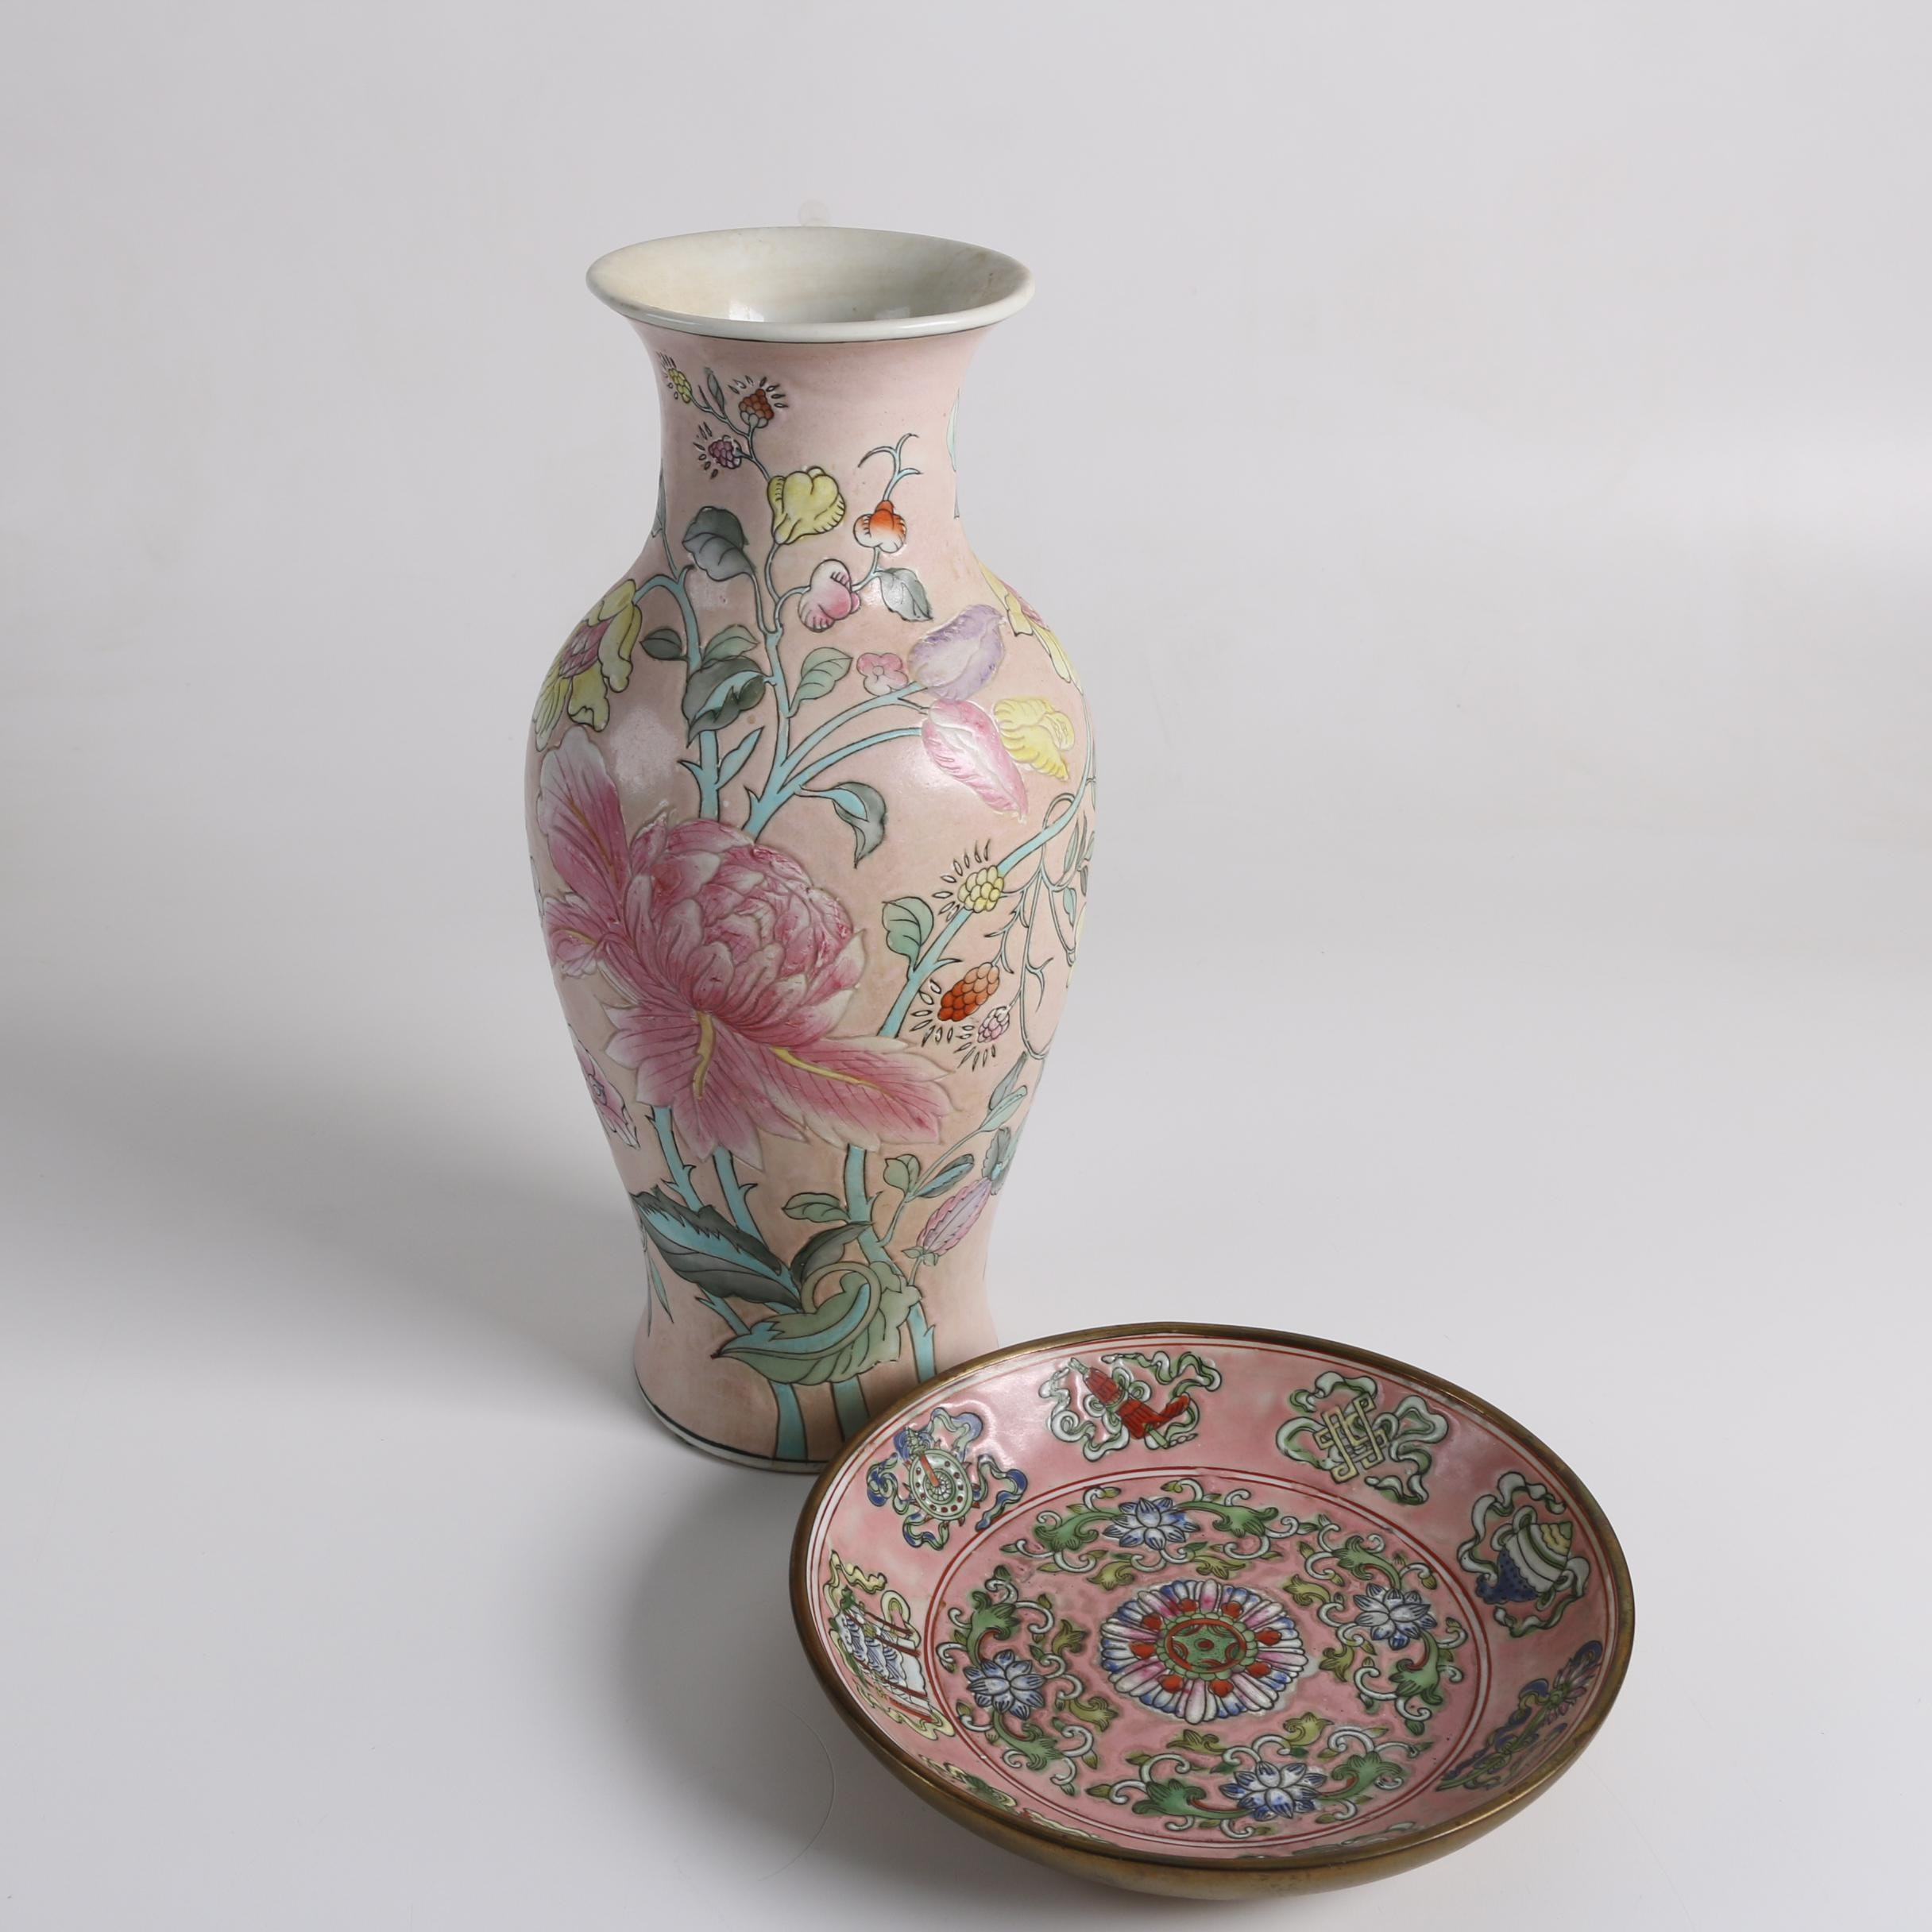 Chinese Hand-Painted Porcelain Vase and Bowl With Brass Rim